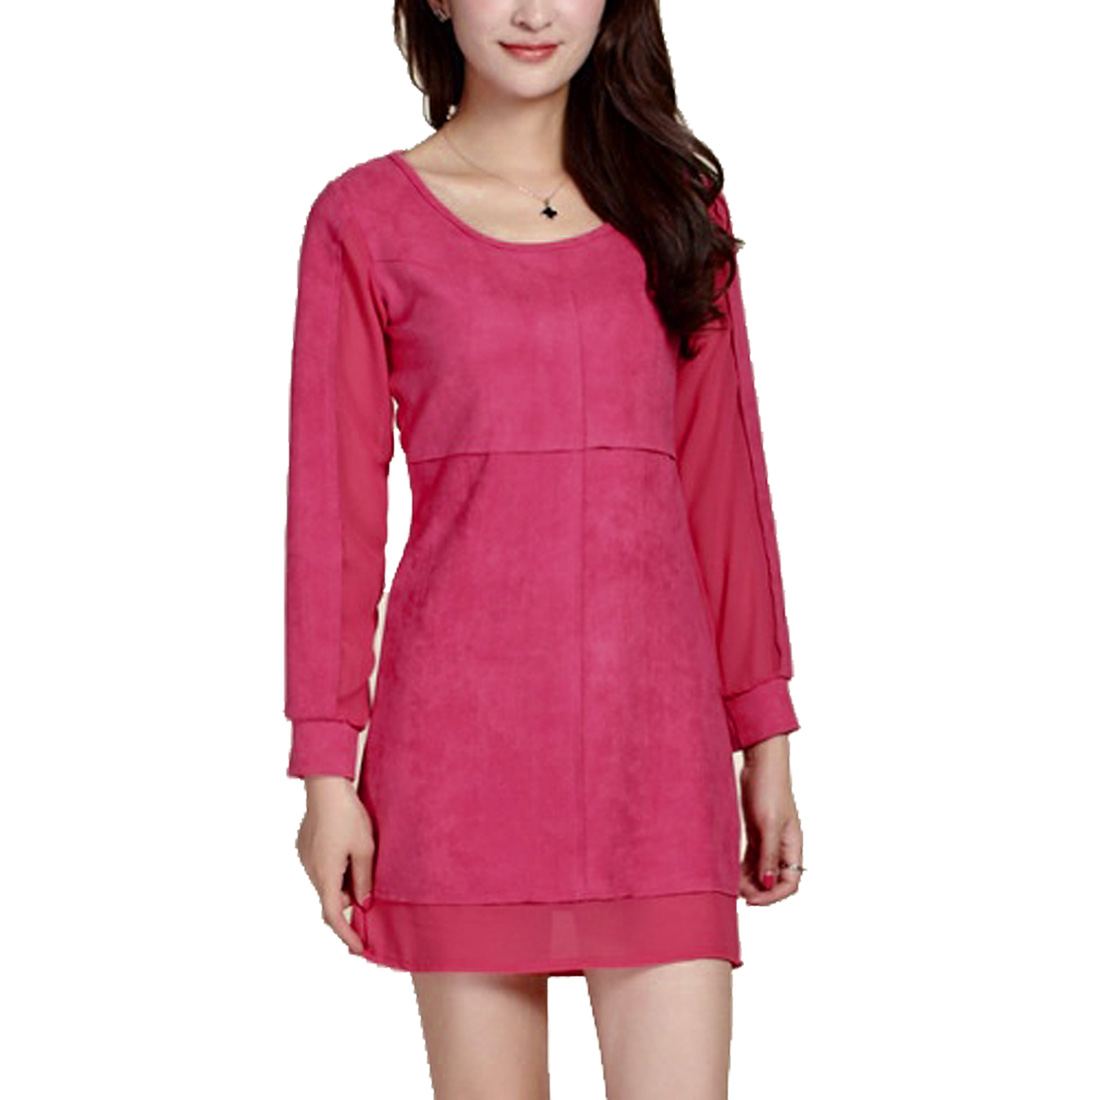 Women Chiffon Splicing Design Stylish Fuchsia Straight Dress S